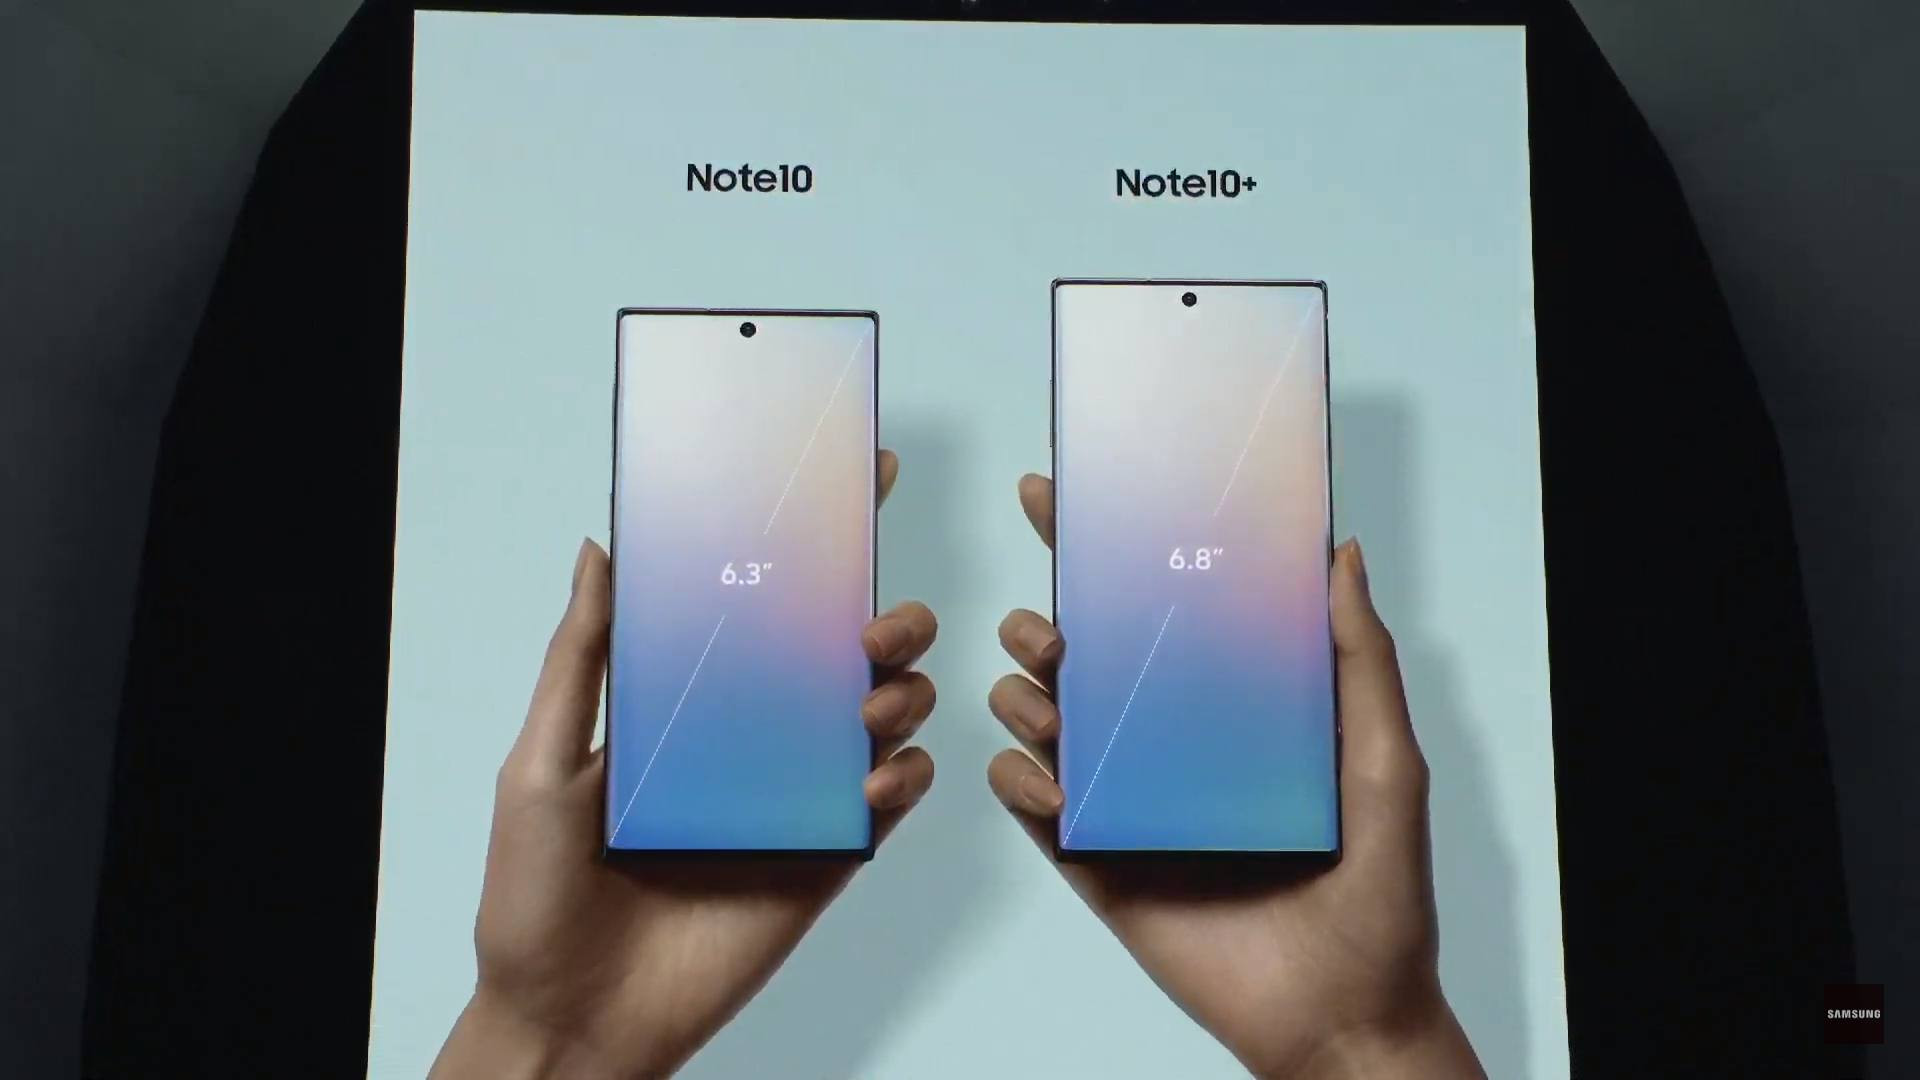 The Samsung Galaxy Note 10 series is officially unveiled - big upgrades all around 1